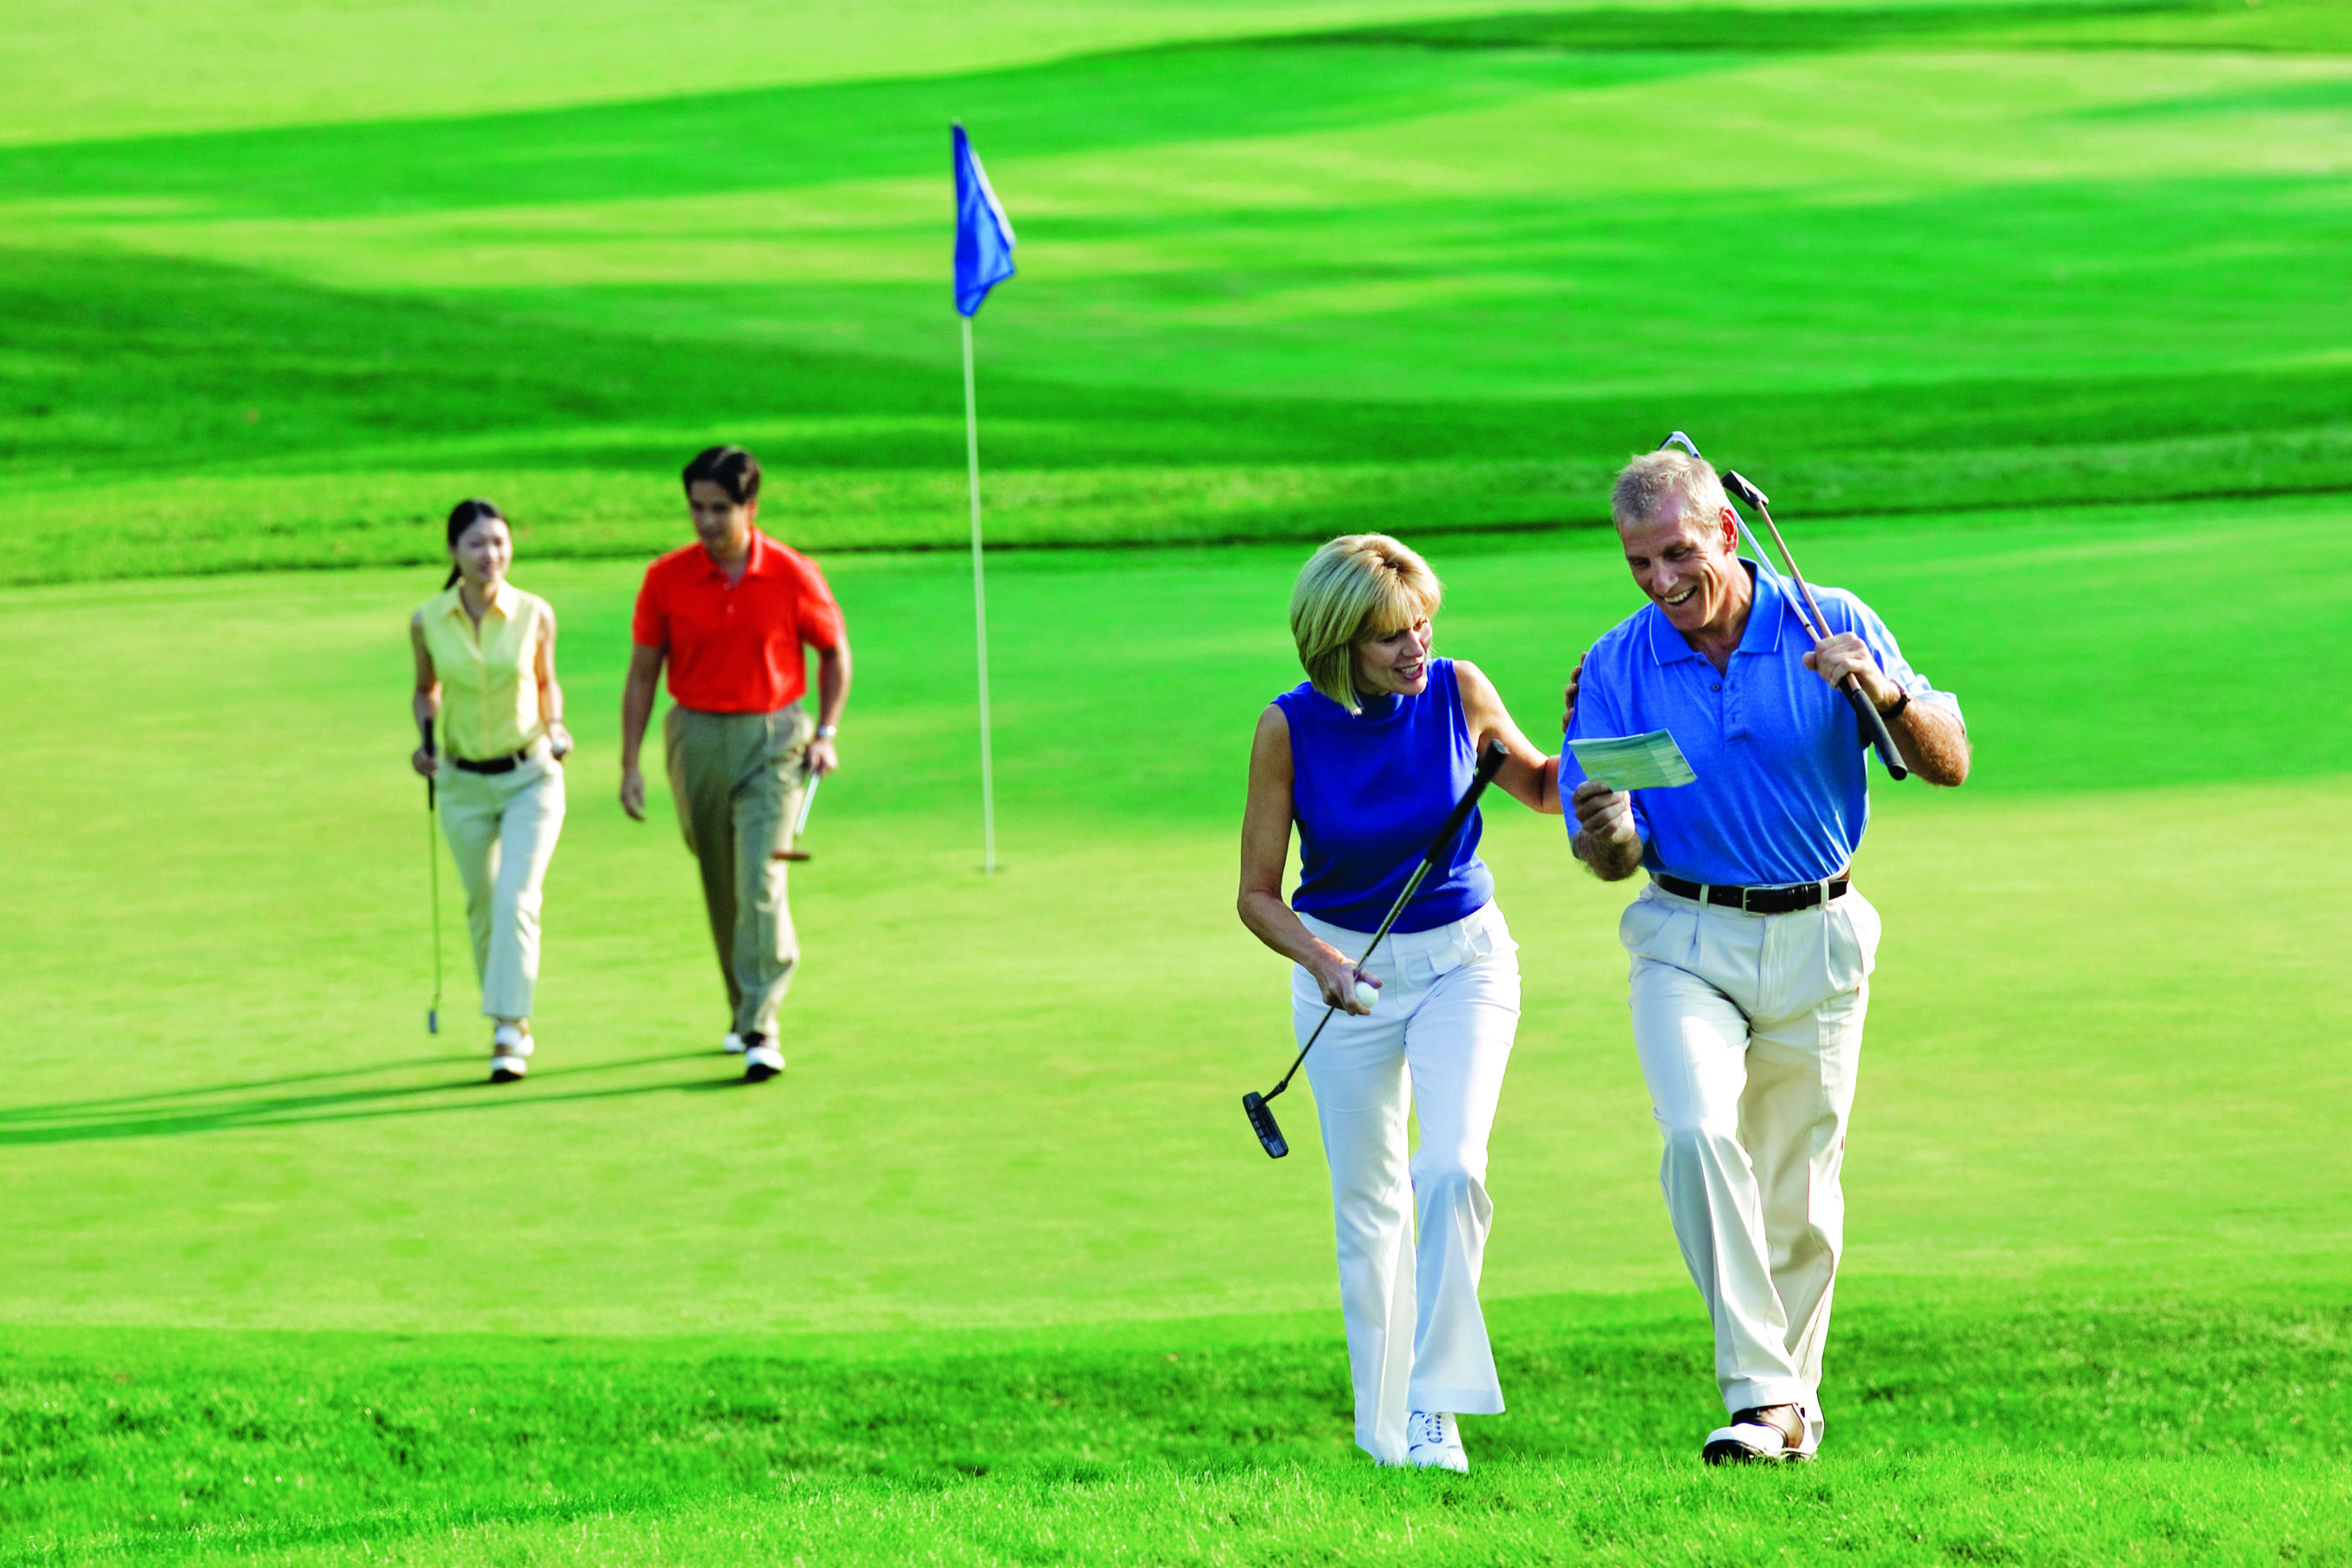 Enjoy A Low Maintenance Relaxed Lifestyle In A Toll Brothers Active Living Neighborhood Read Today S Toll Talks Blo Golf Courses Famous Golf Courses Sarasota